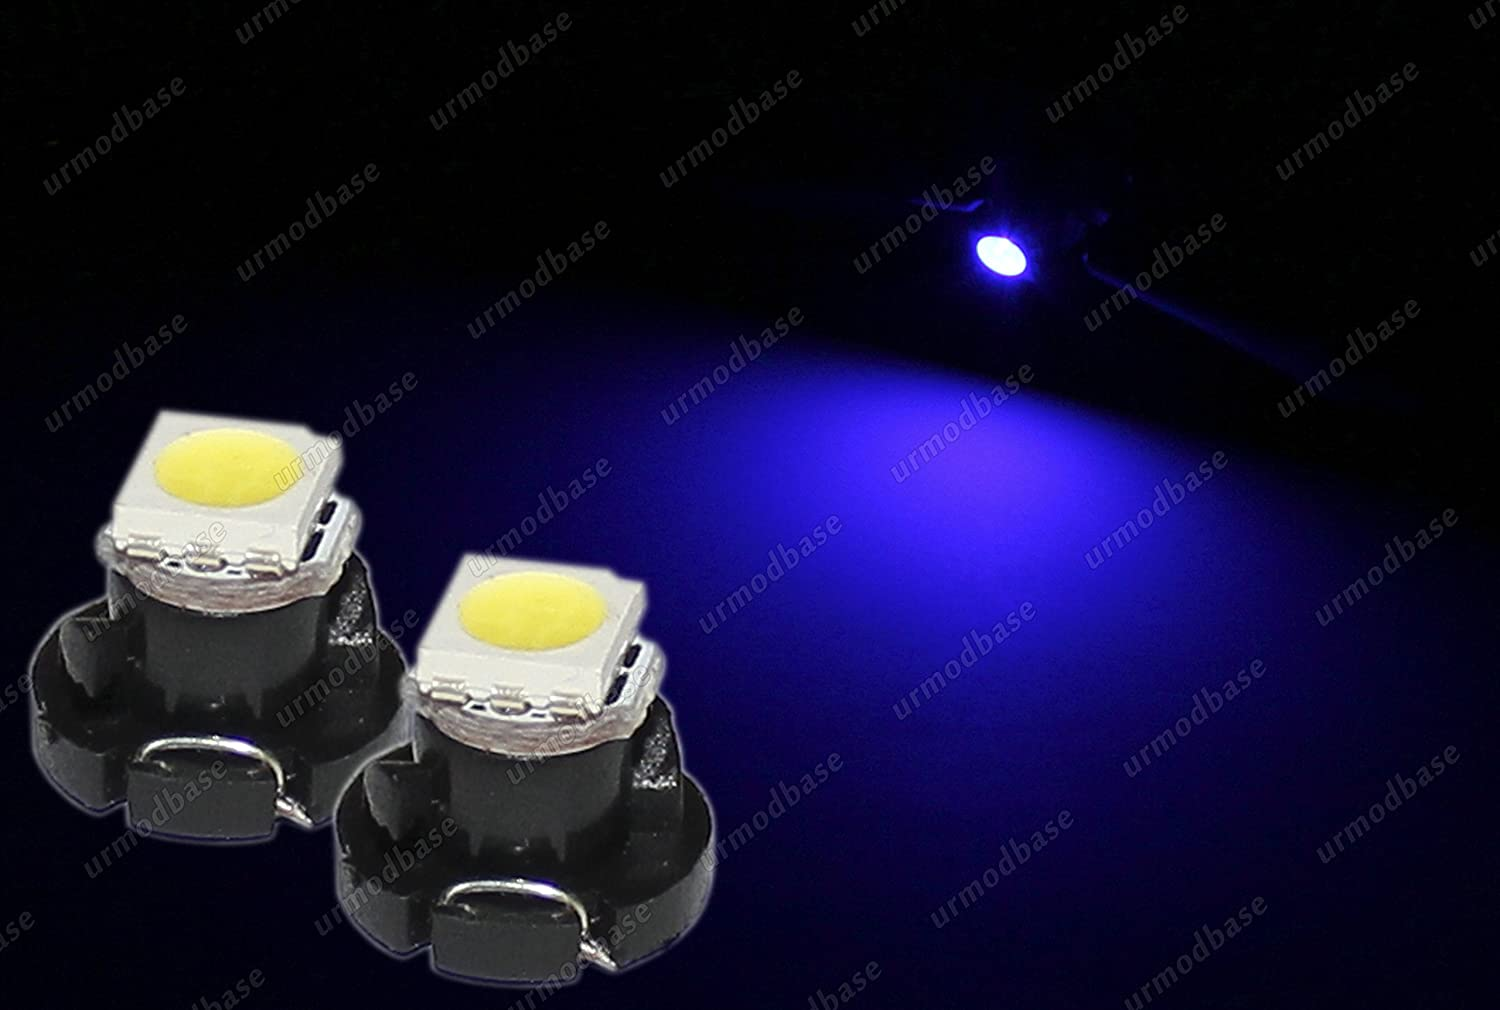 5 Blue SMD LED T4.2 Neo Wedge 12v Interior LED Bulb